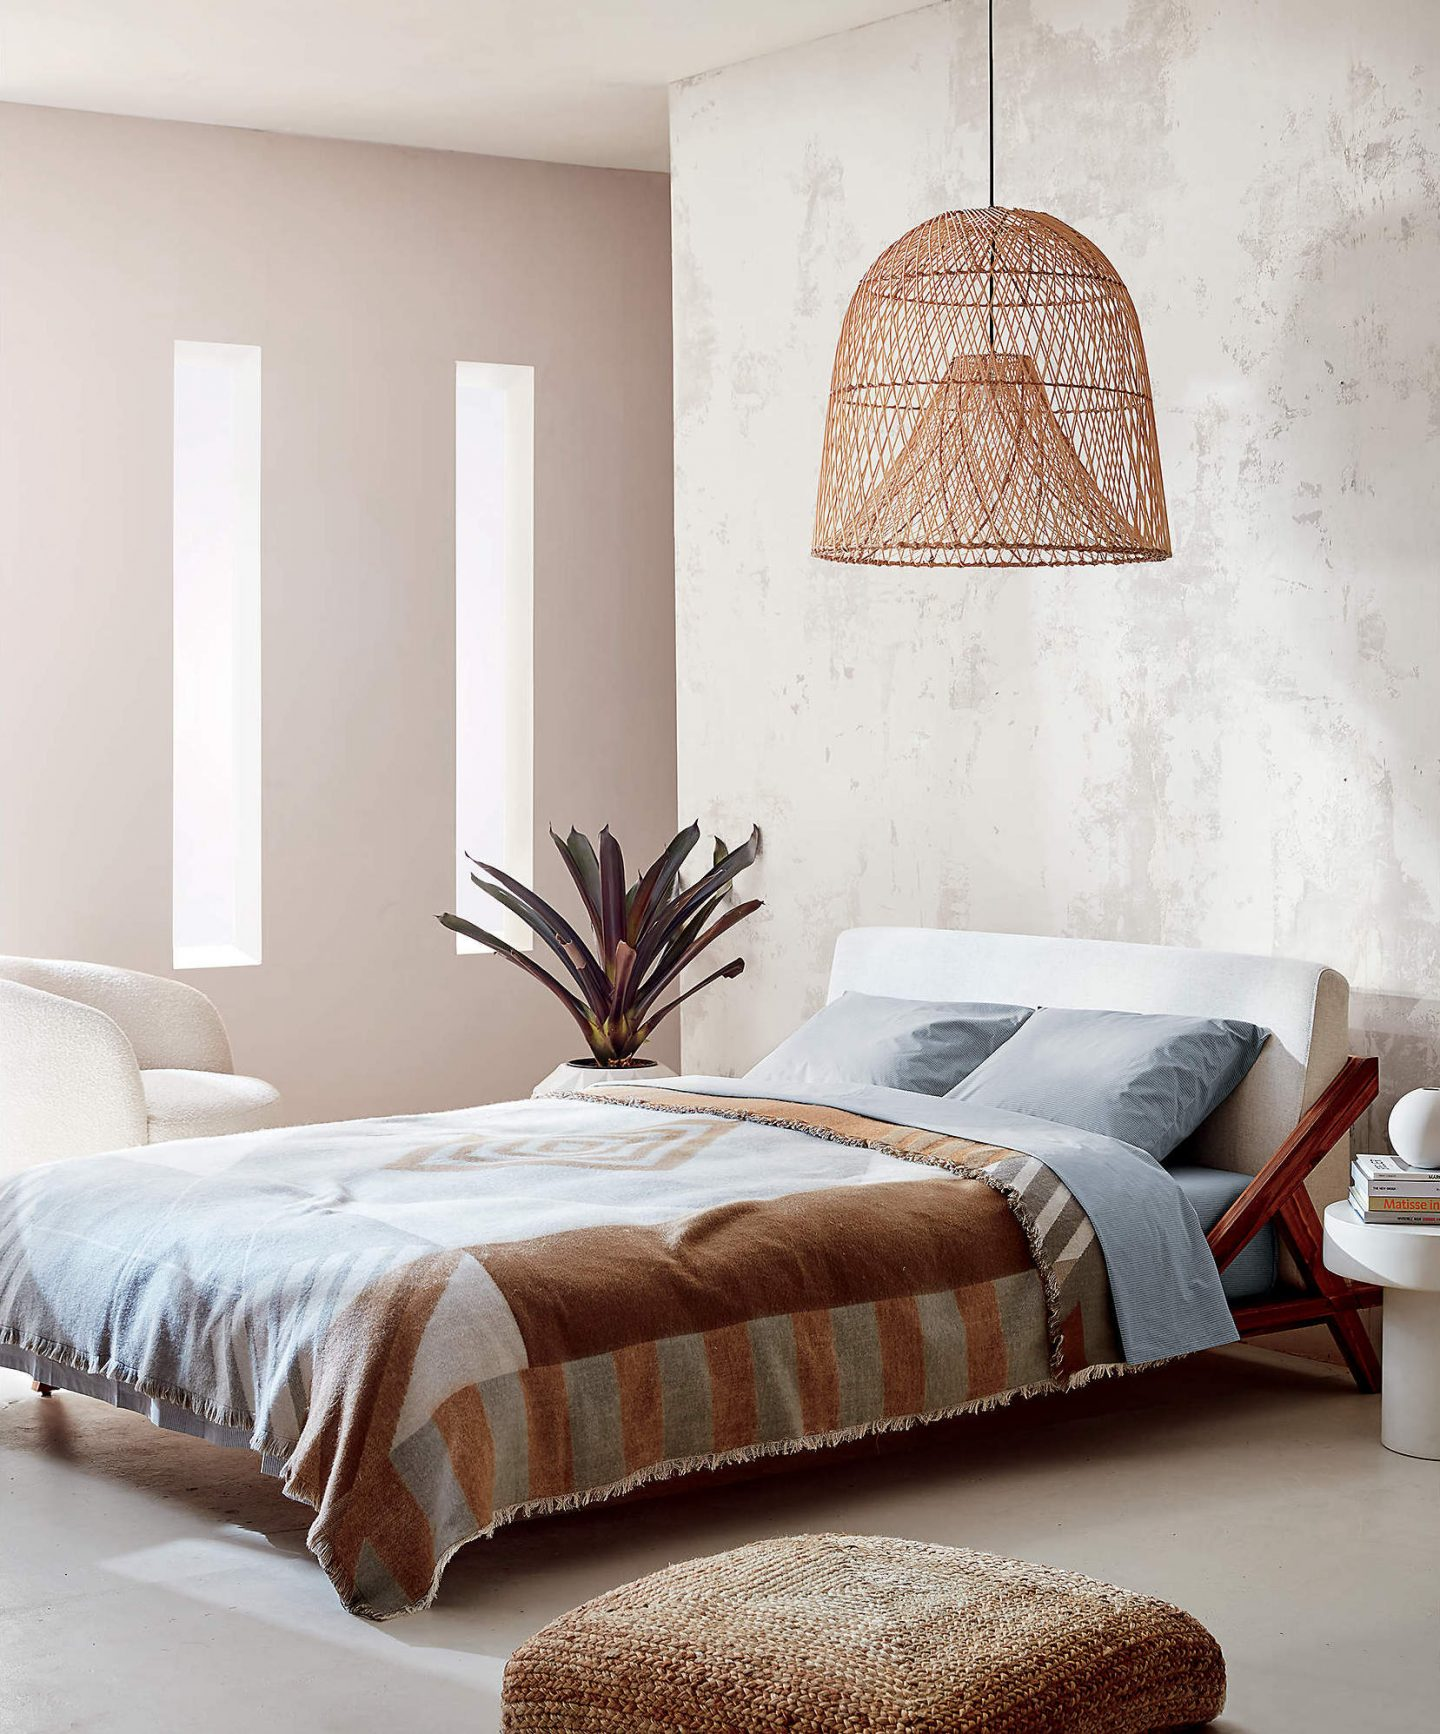 Rattan pendant light and low bed